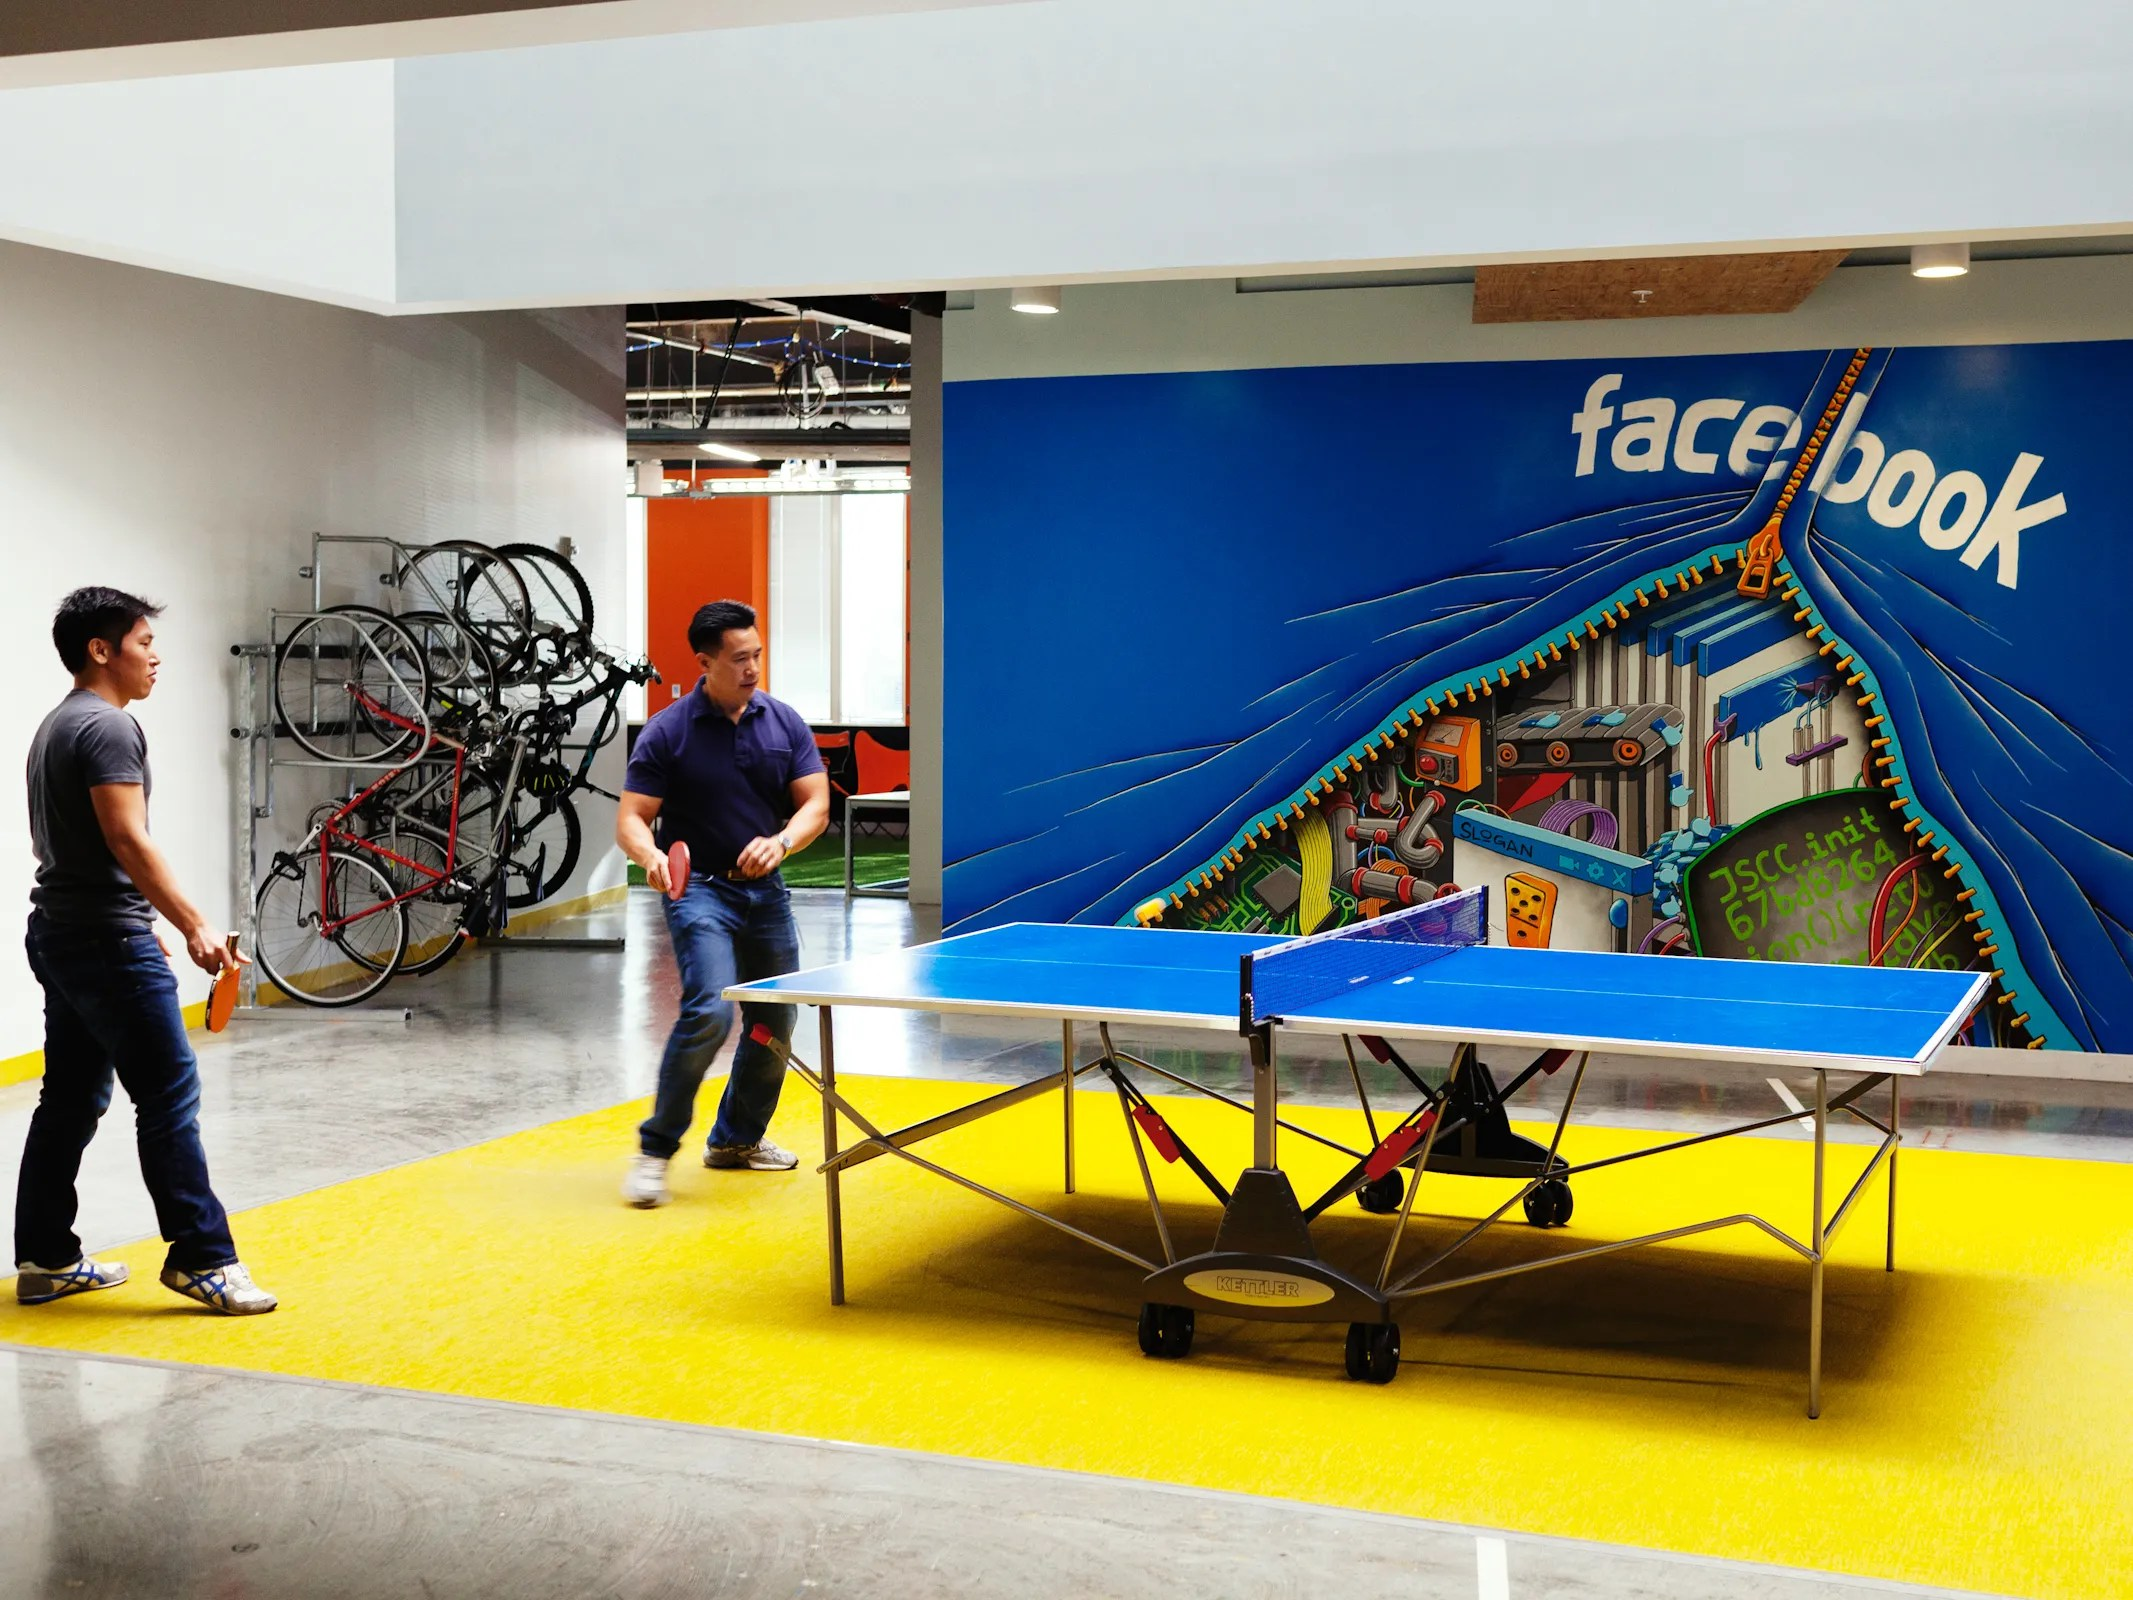 127inside facebook headquarters in menlo park california employees play ping pong front of a mural by artist shaun loganpeter mccolloughwired office